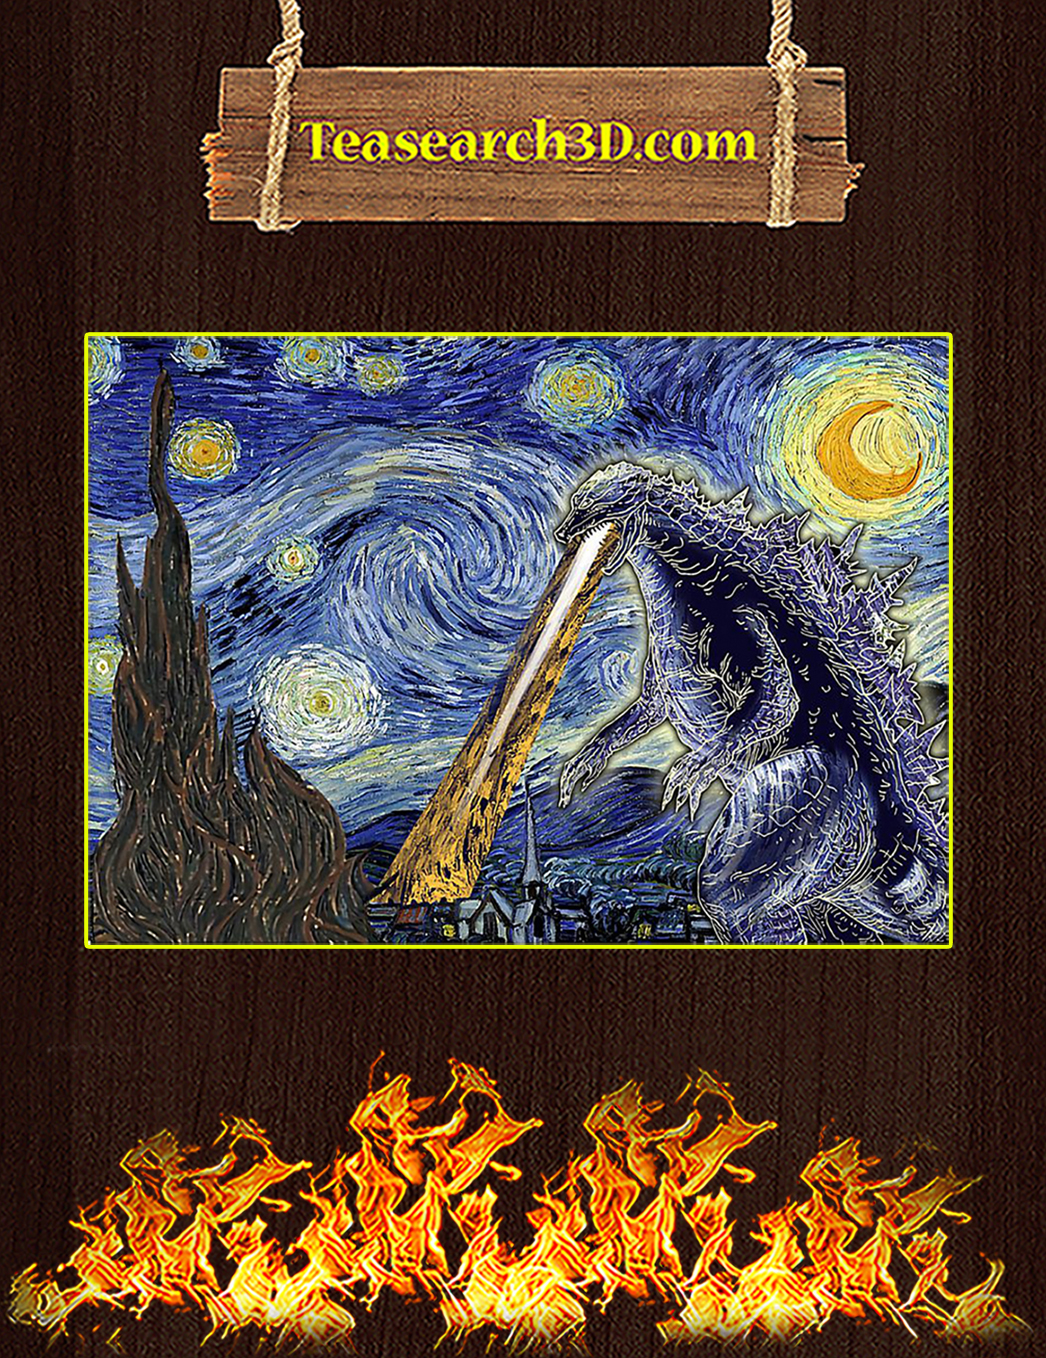 Starry night with godzilla poster A1